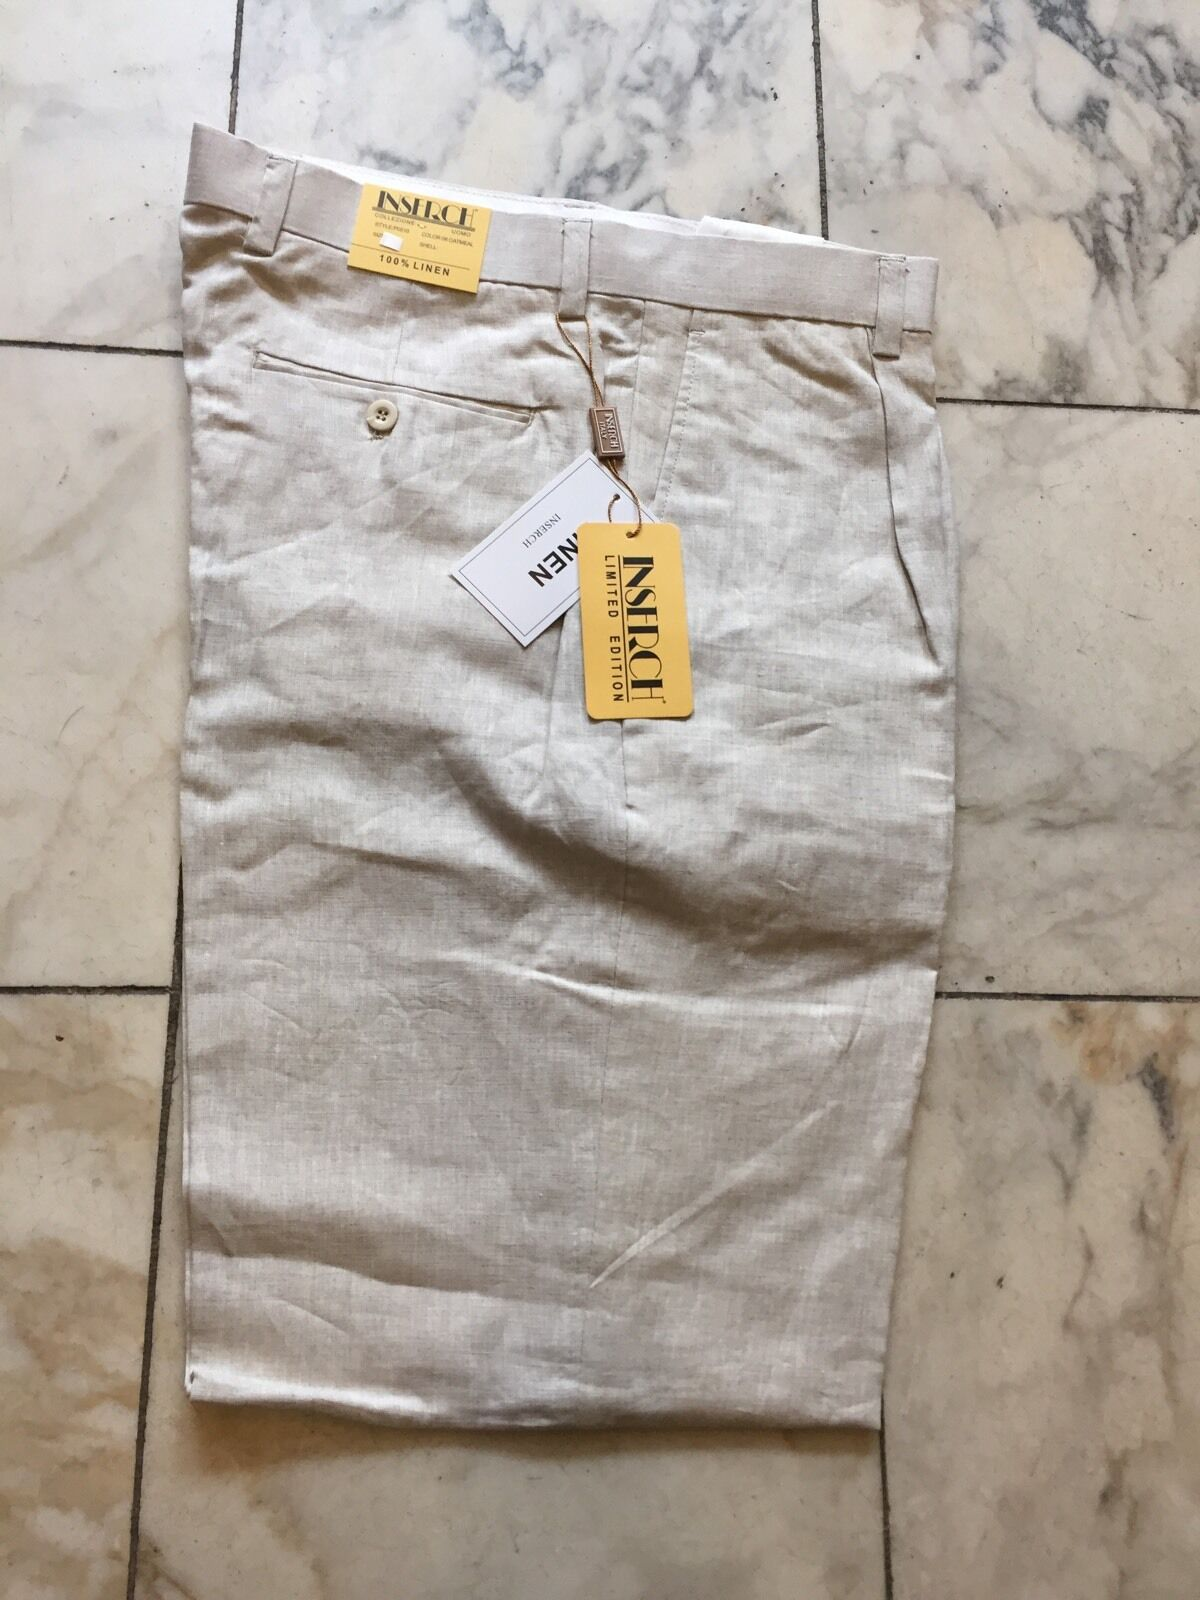 NWT INSERCH  PLEATED 100% LINEN NATURAL PANTS MENS SIZE 34